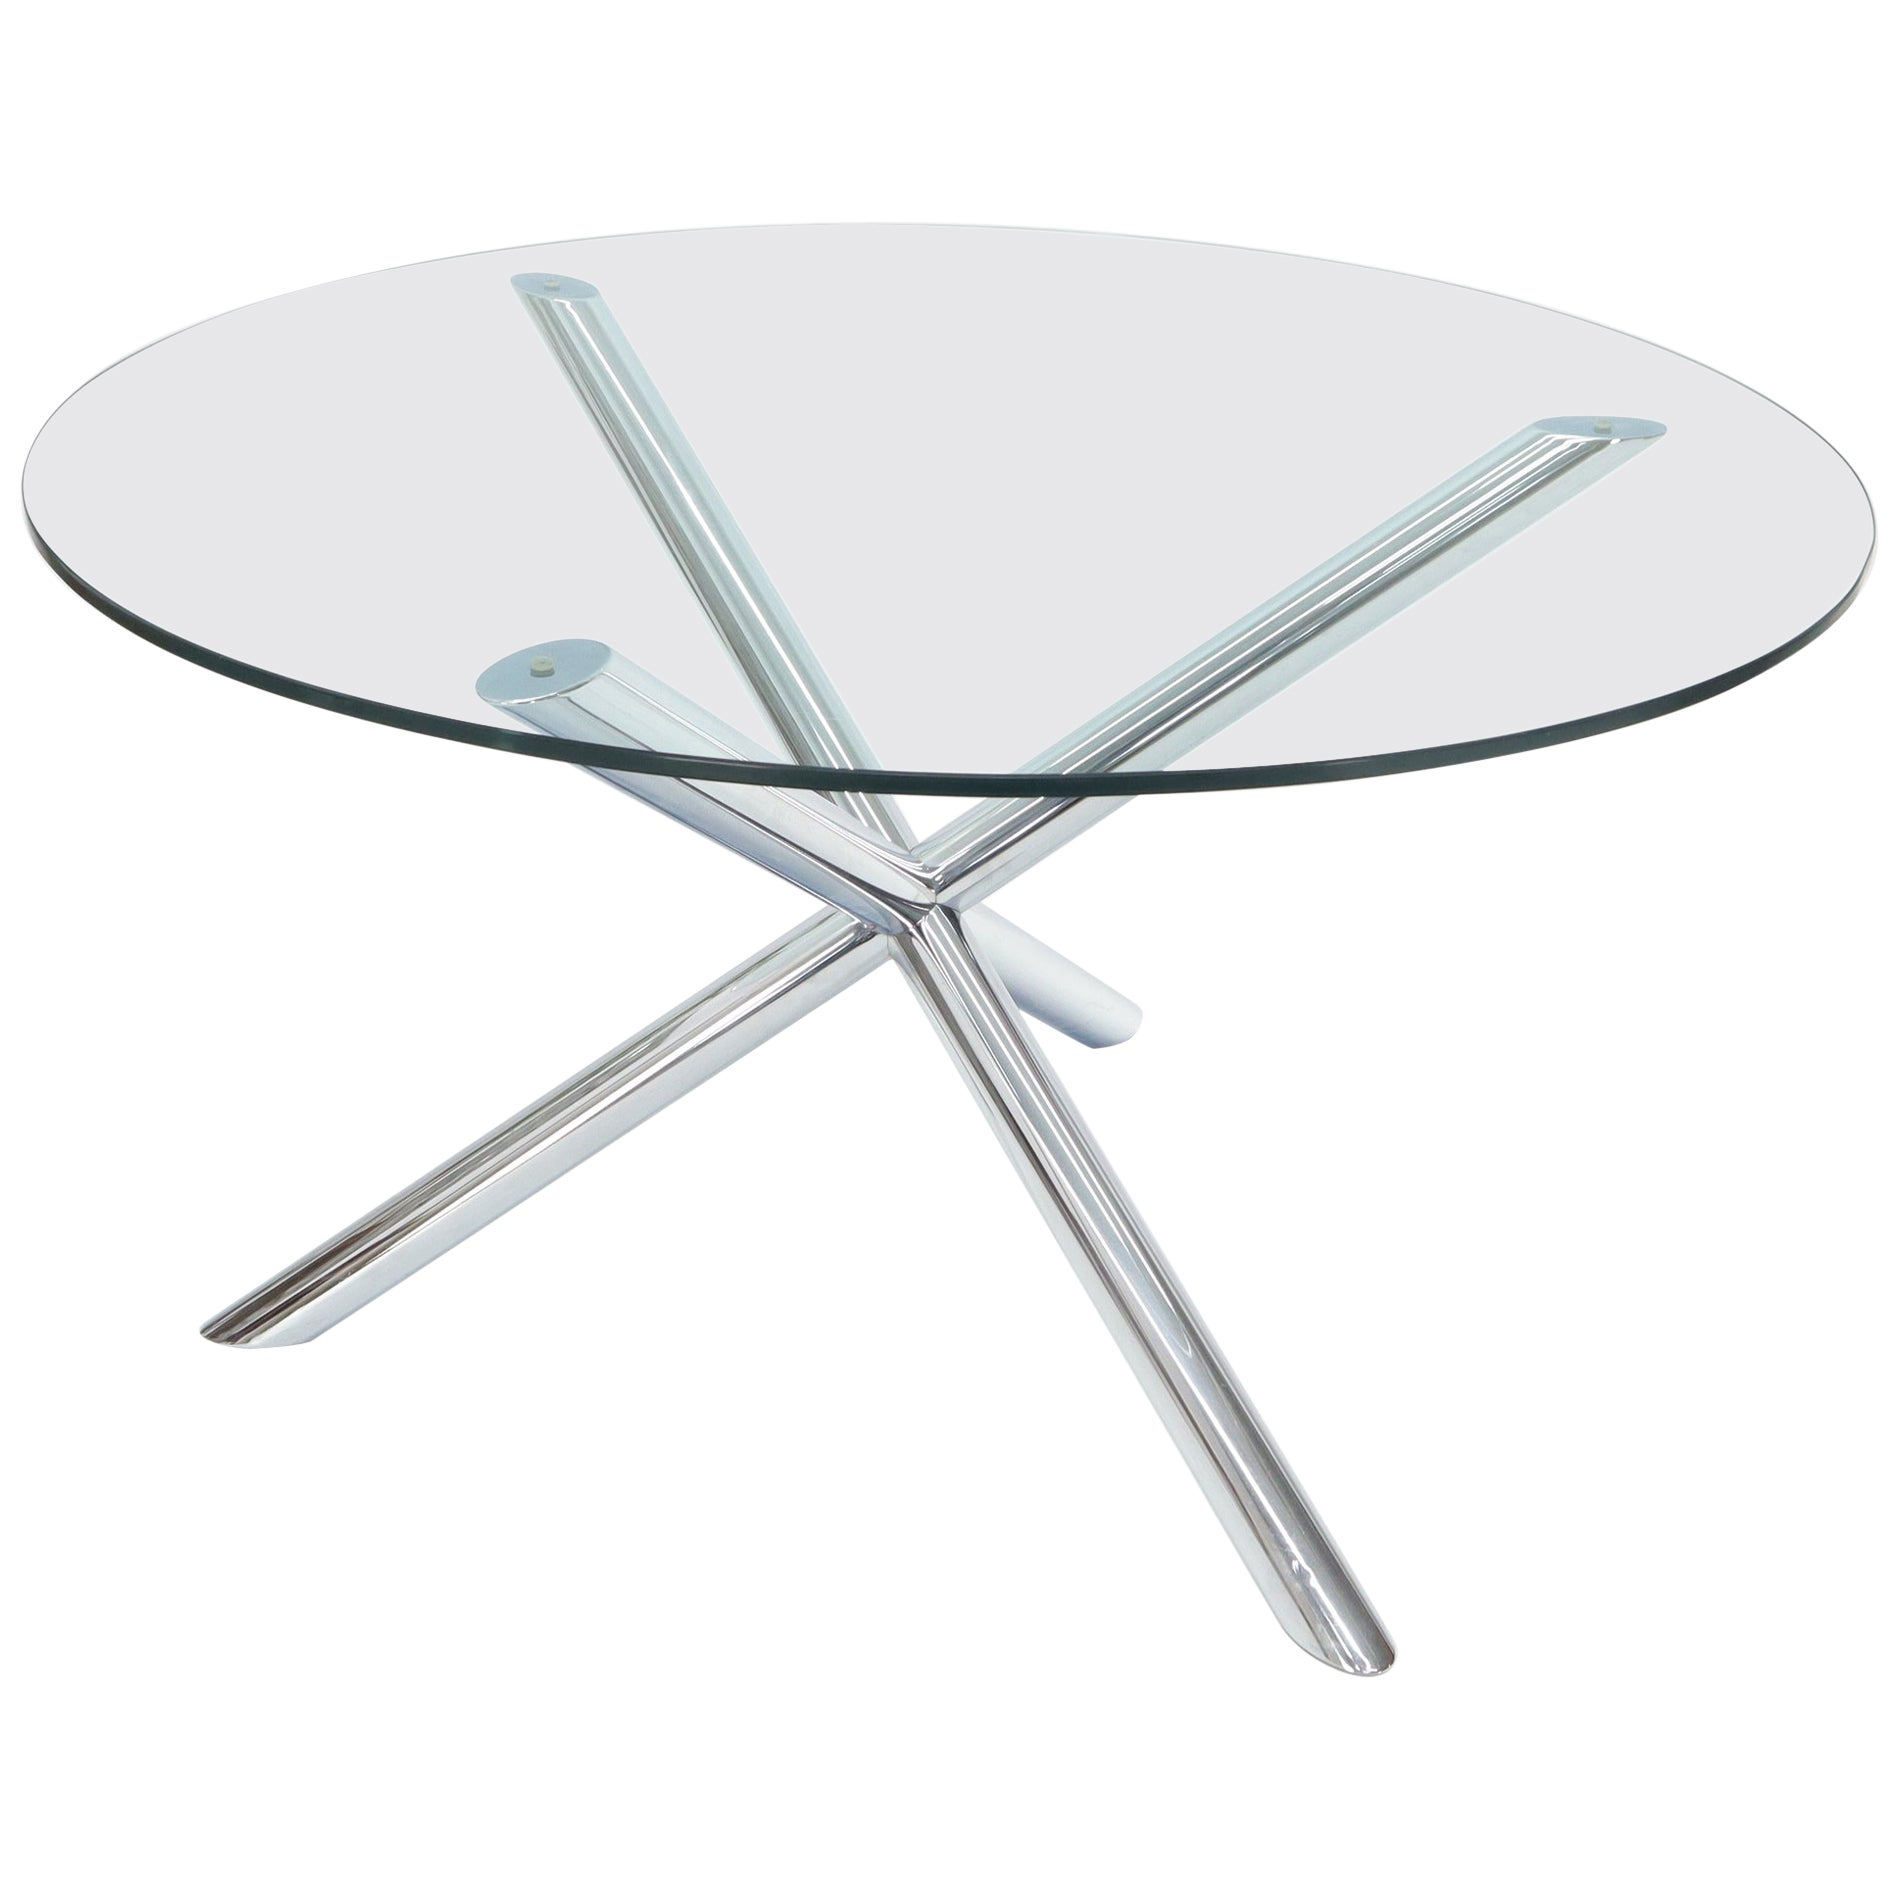 Jack Shape Large Round Glass Top Dining Table